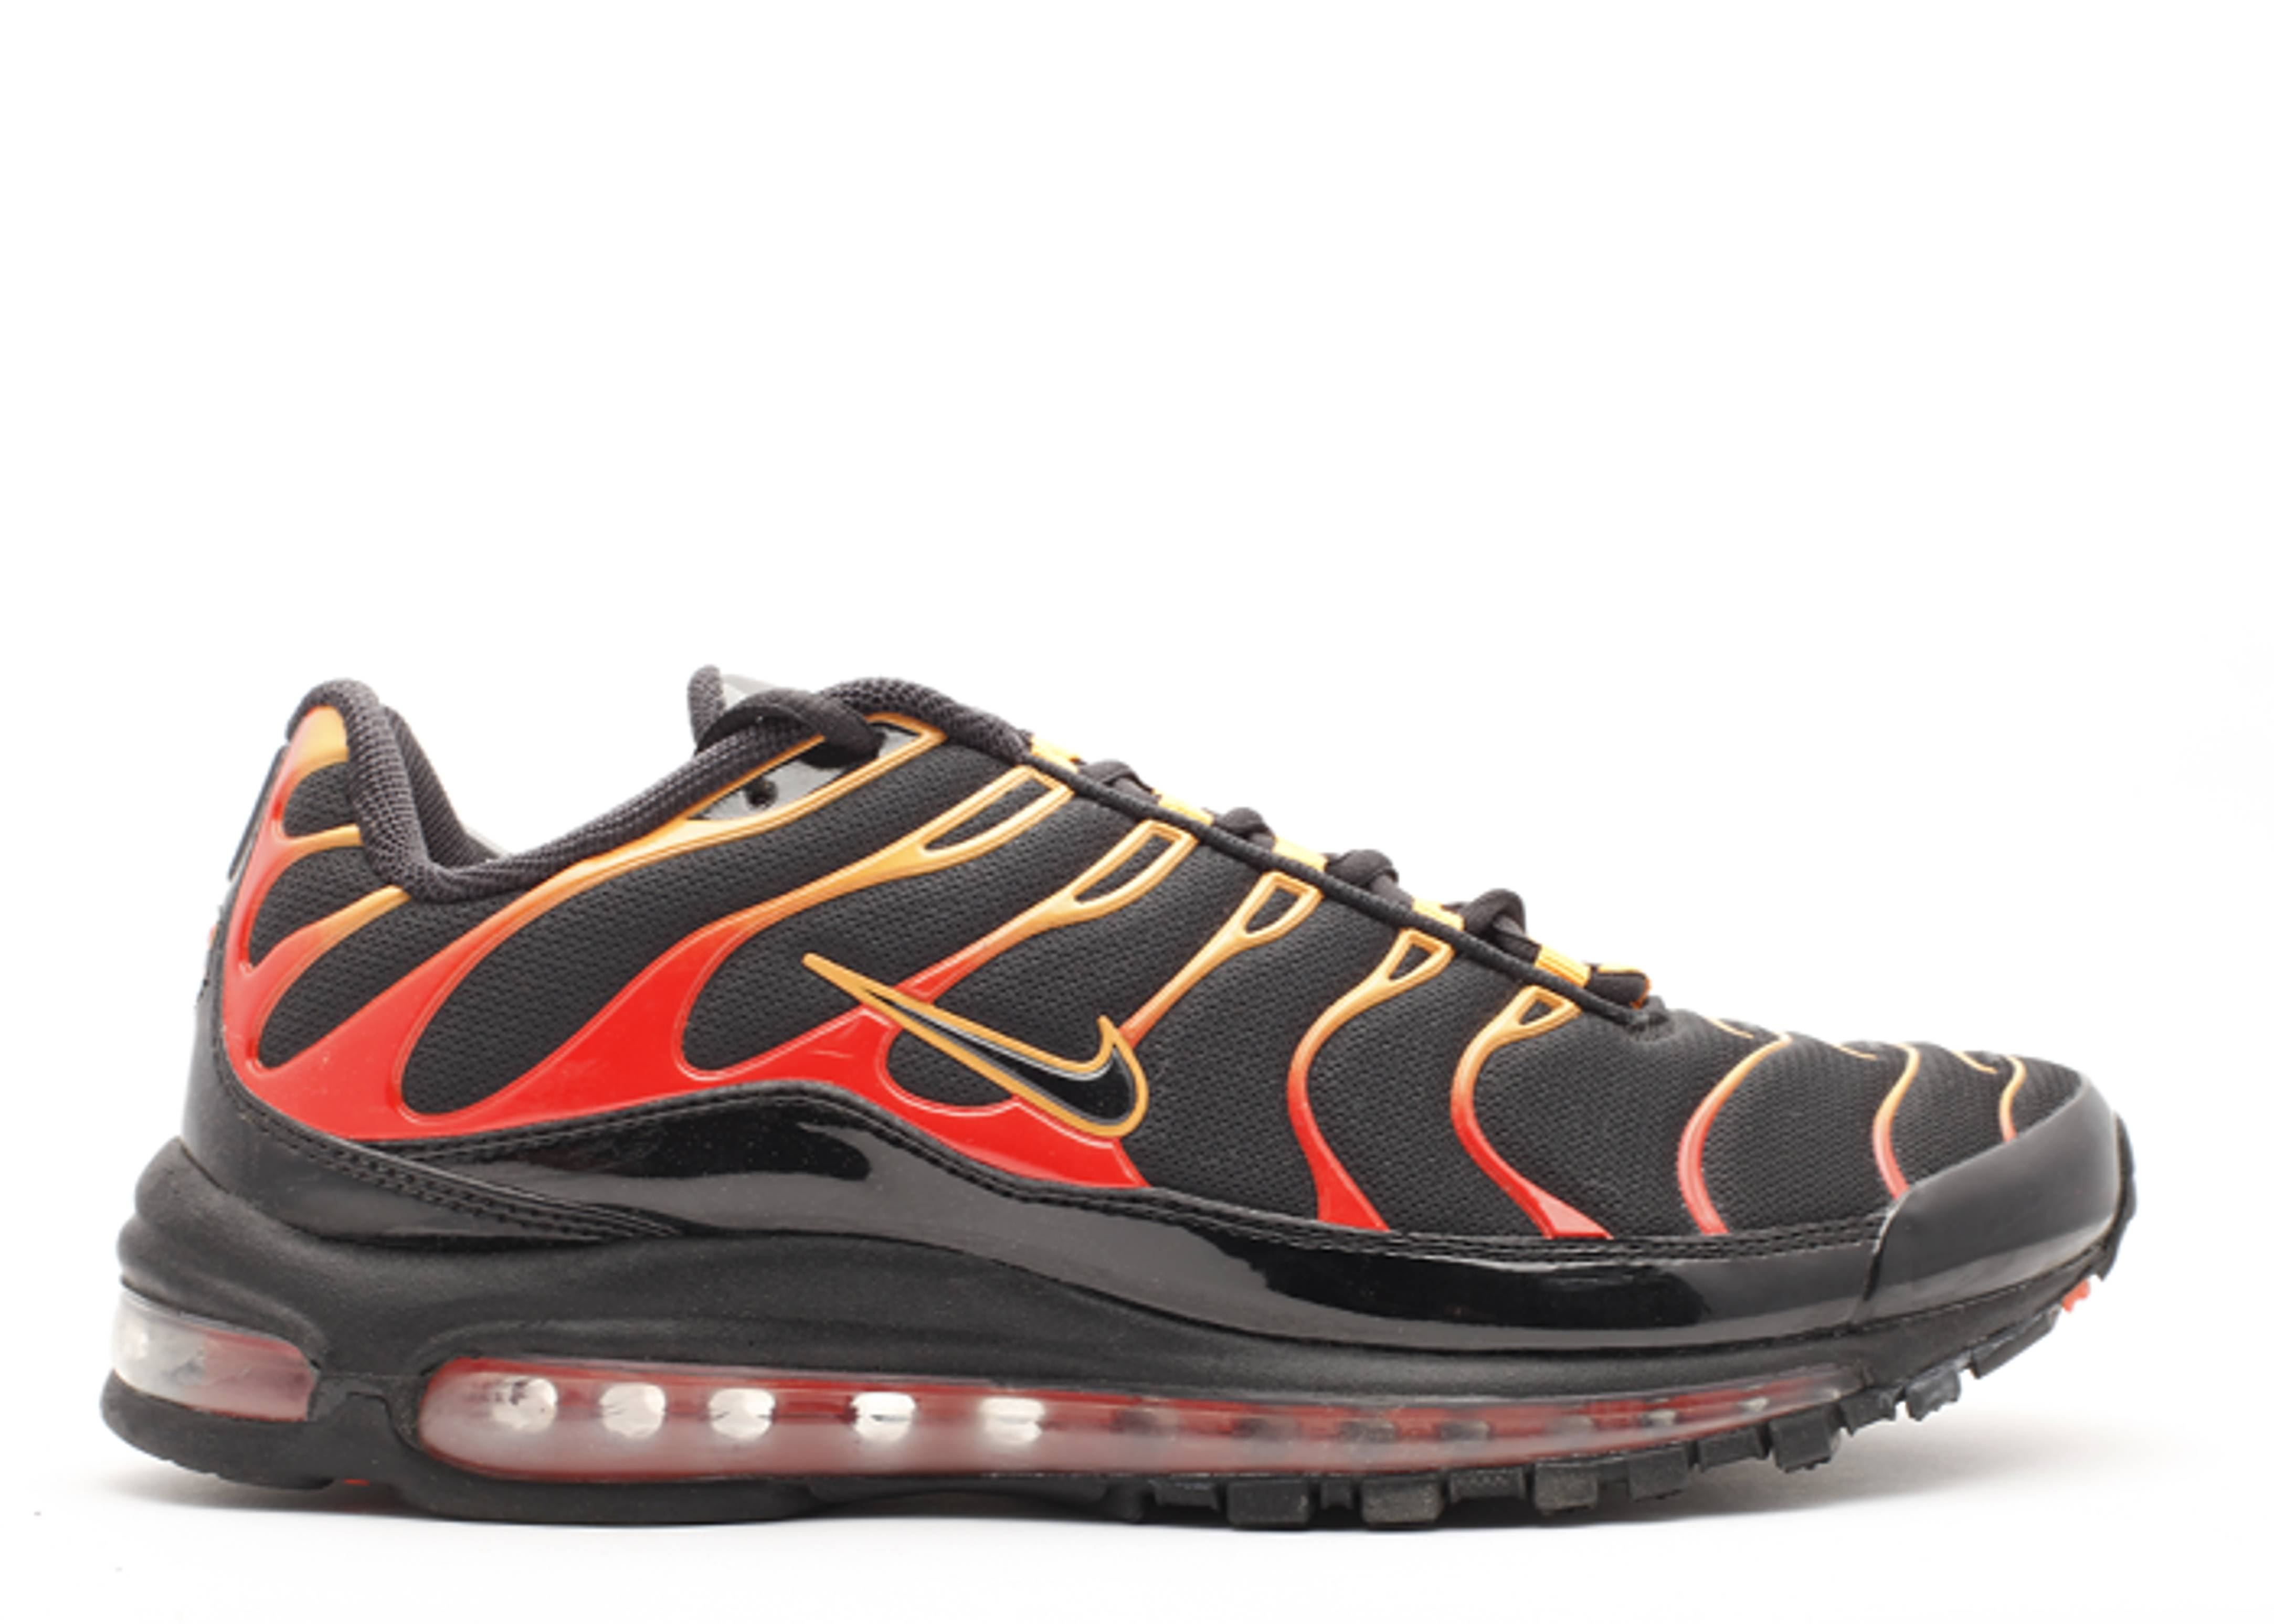 3411be8f Air Max Plus 97 - Nike - 327455 001 - black/black-engine 1-shck orng ...